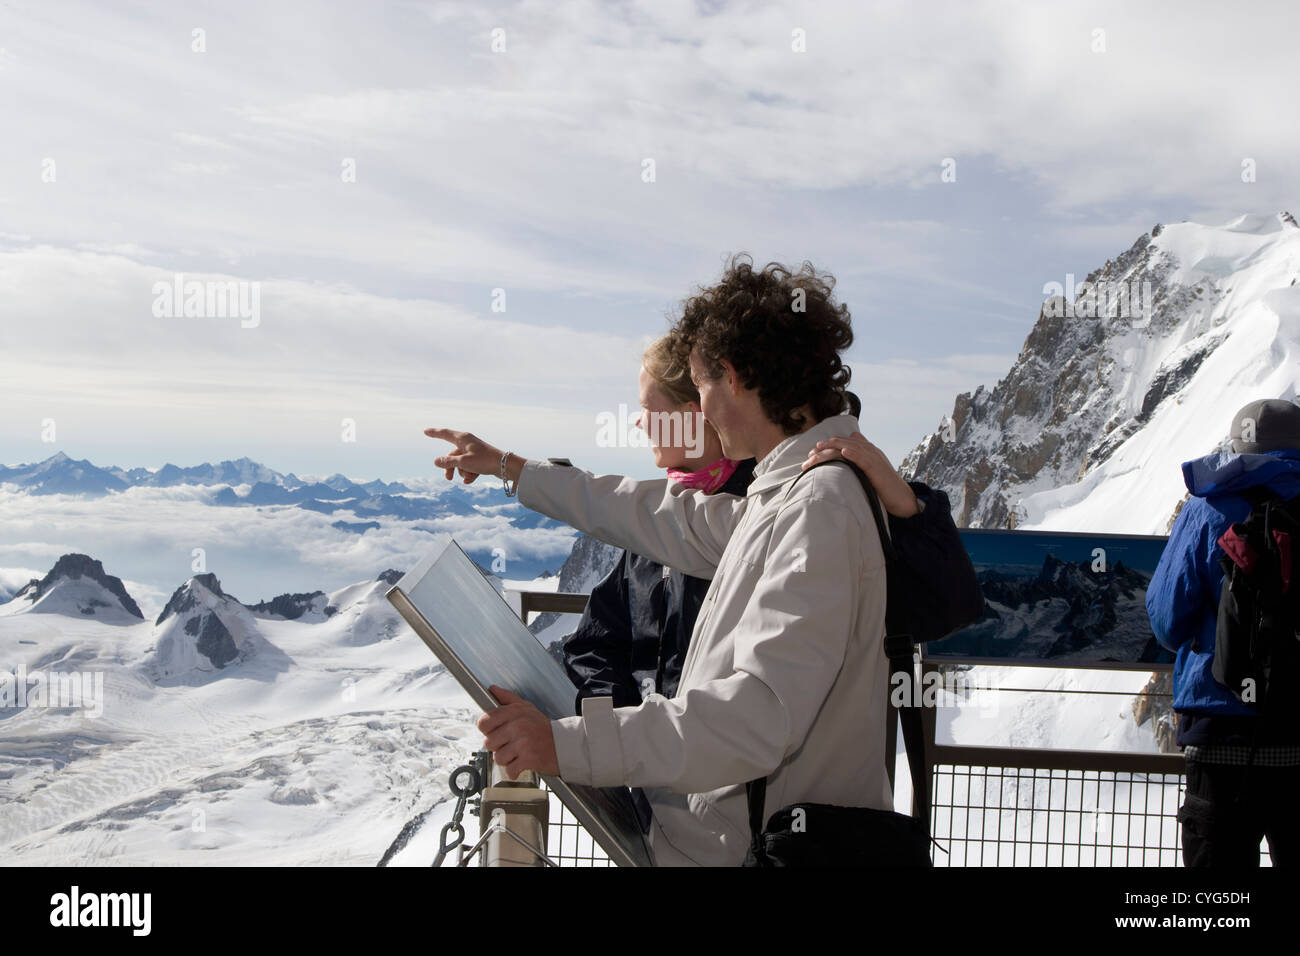 Courmayeur - Mont Blanc / Aiguille du Midi / sightseers on the Summit Terrace - Stock Image